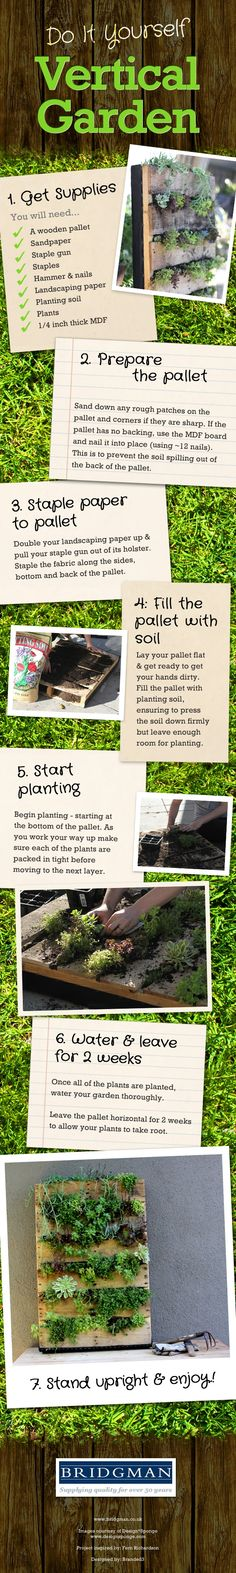 8 Best Jardines Verticales Images On Pinterest Gutter Garden